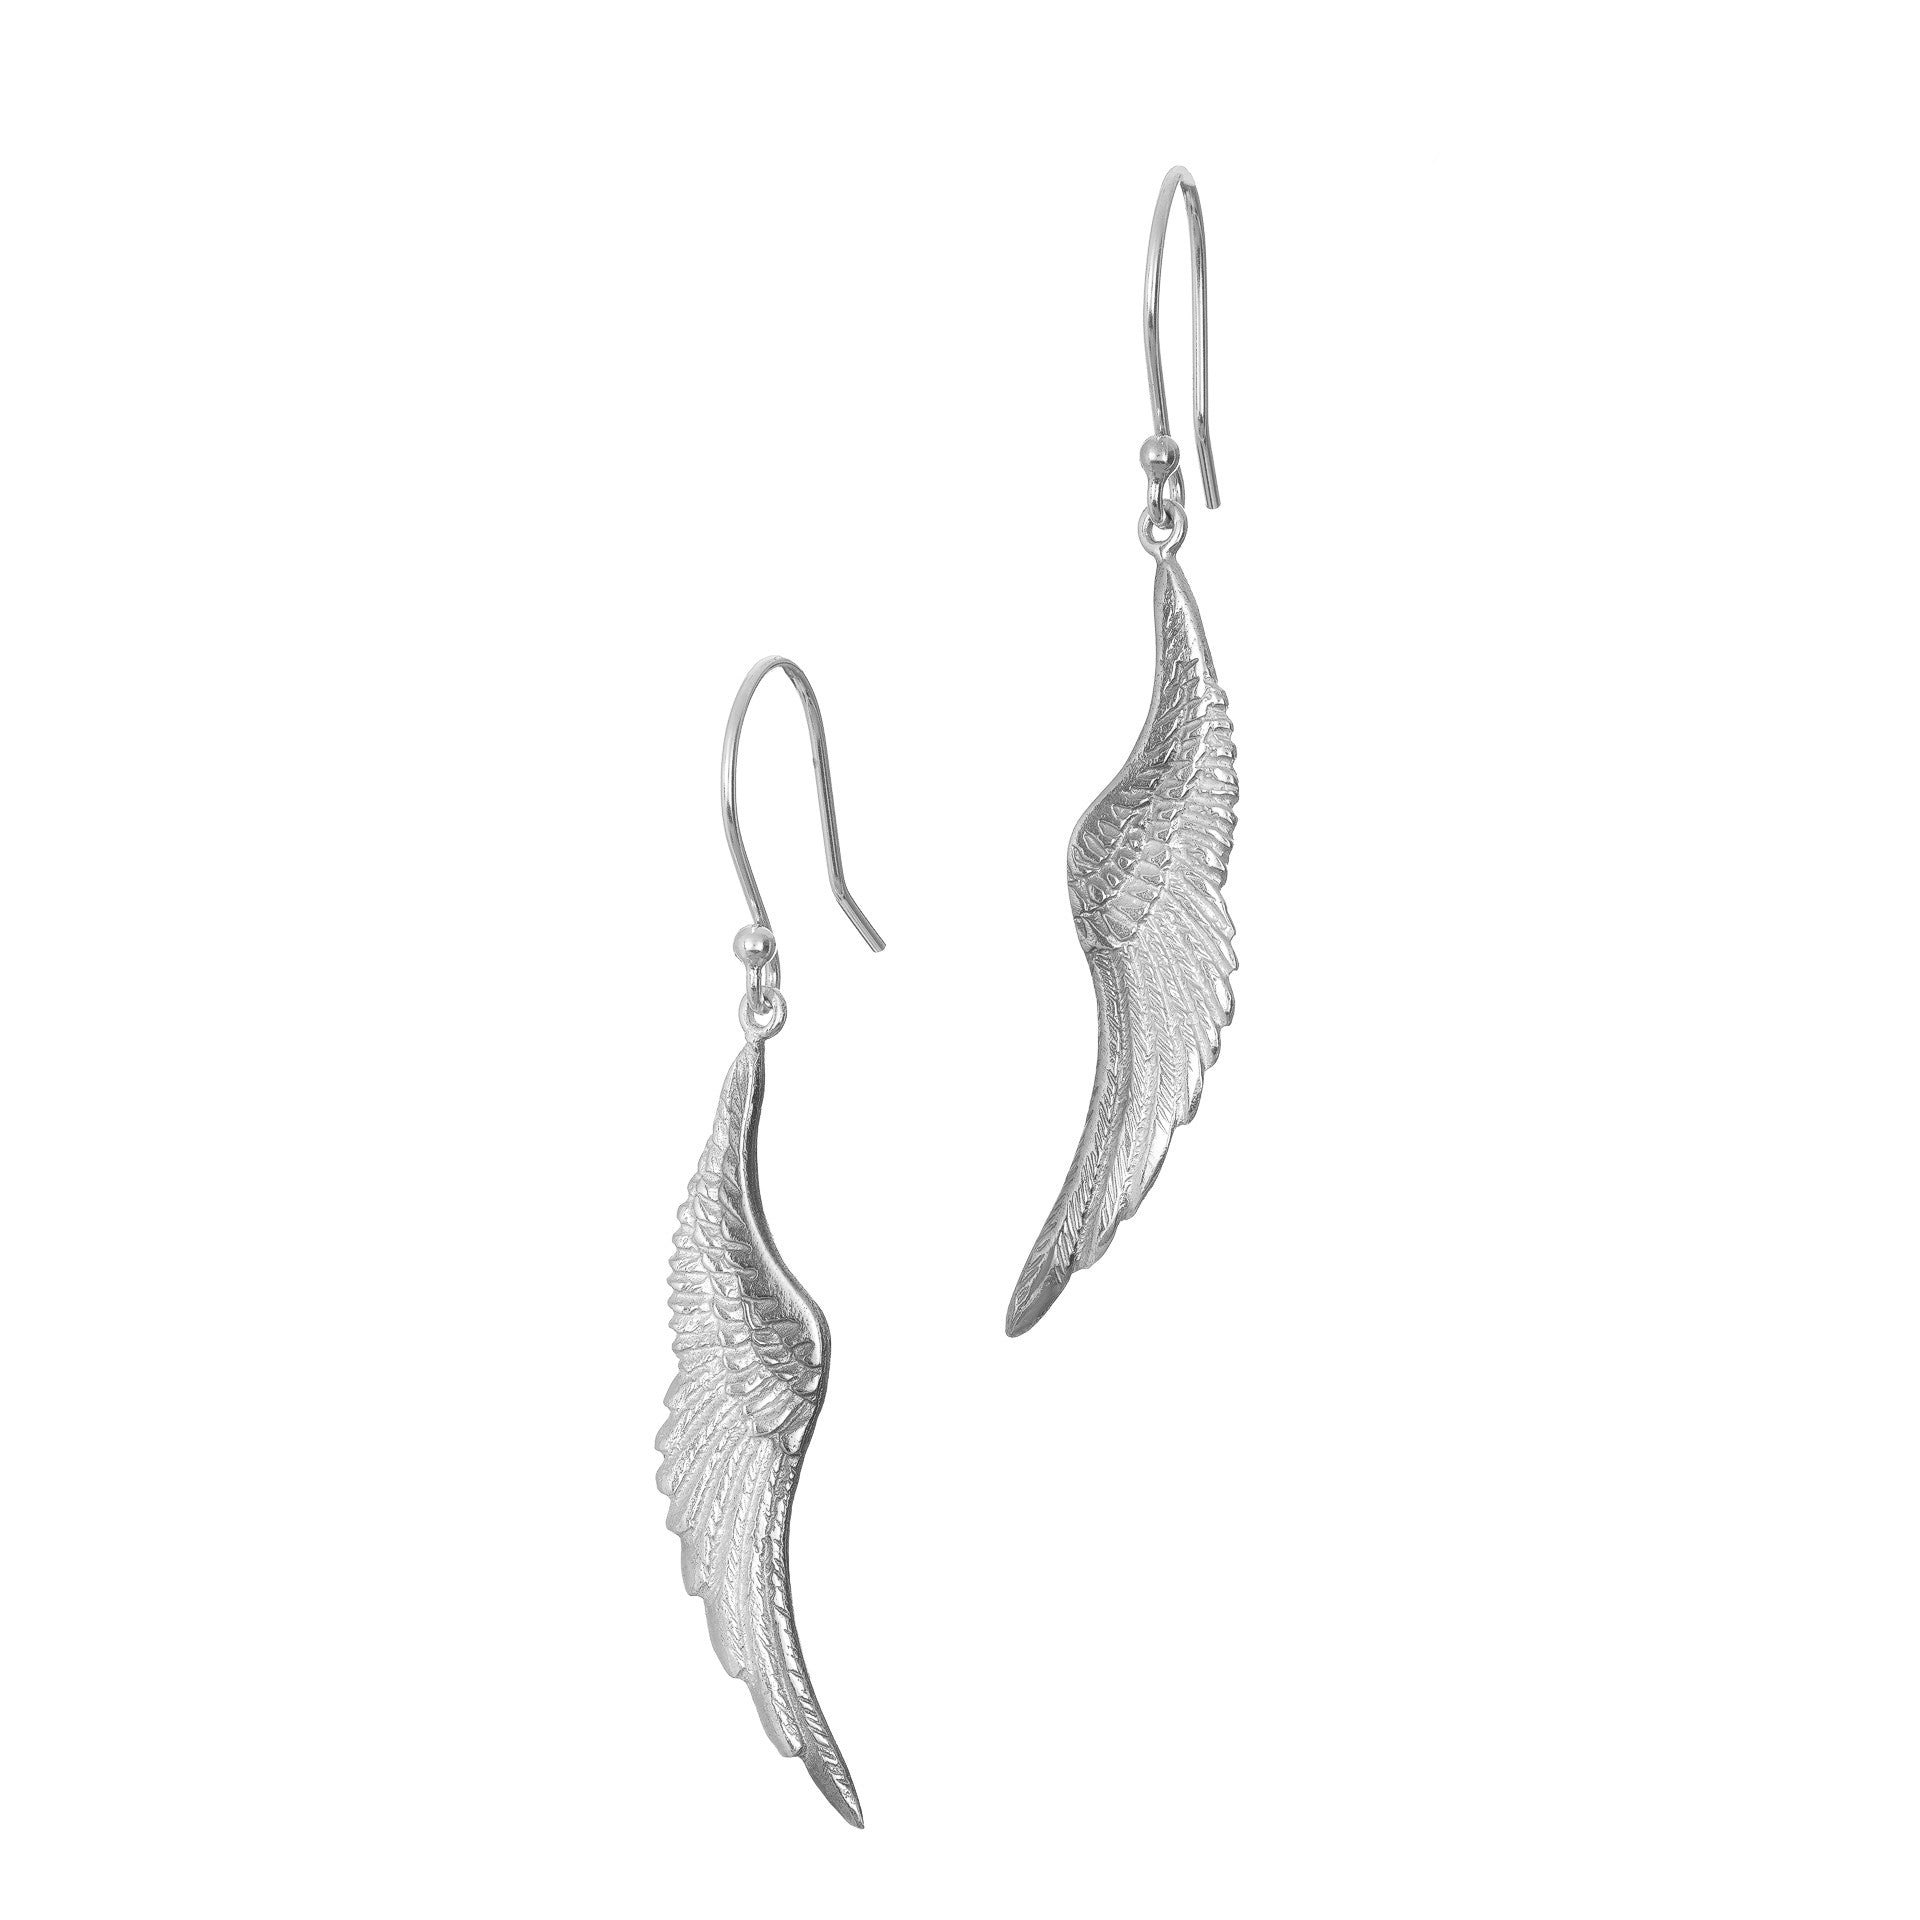 Angels Whisper Drop Earrings made in Ireland by Elena Brennan Jewellery with Sterling Silver.